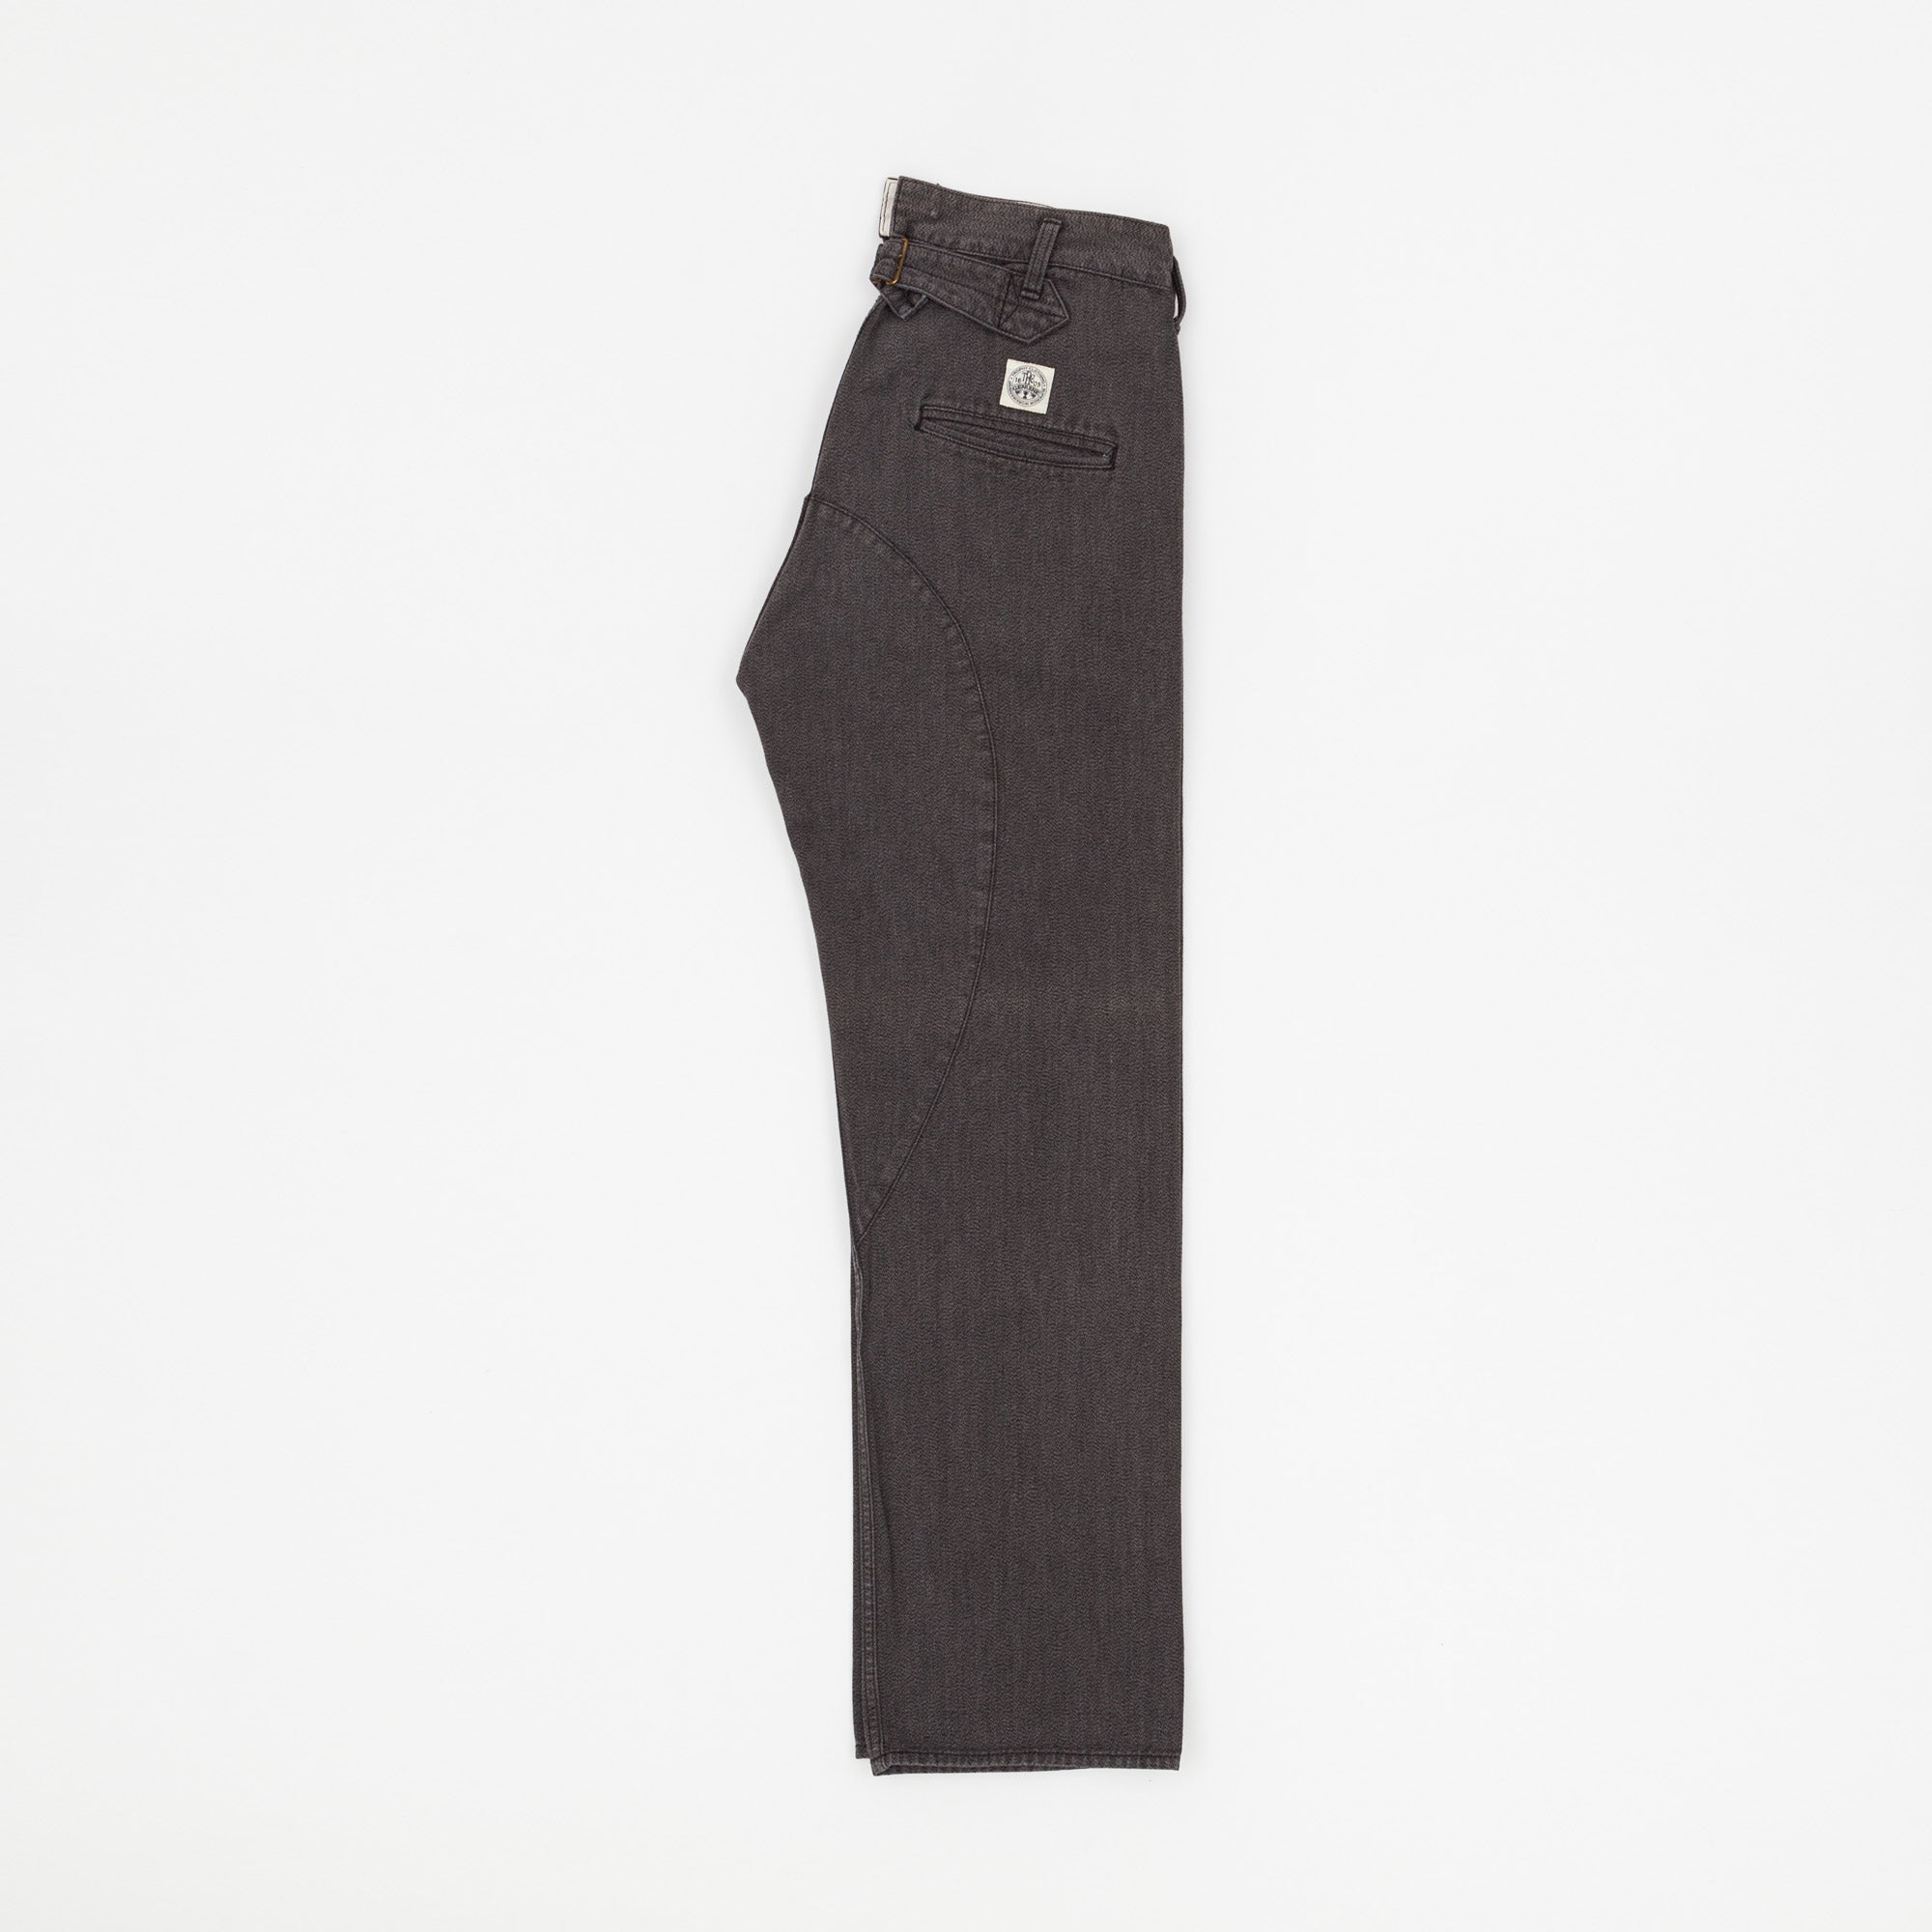 Cinch Back Work Pant